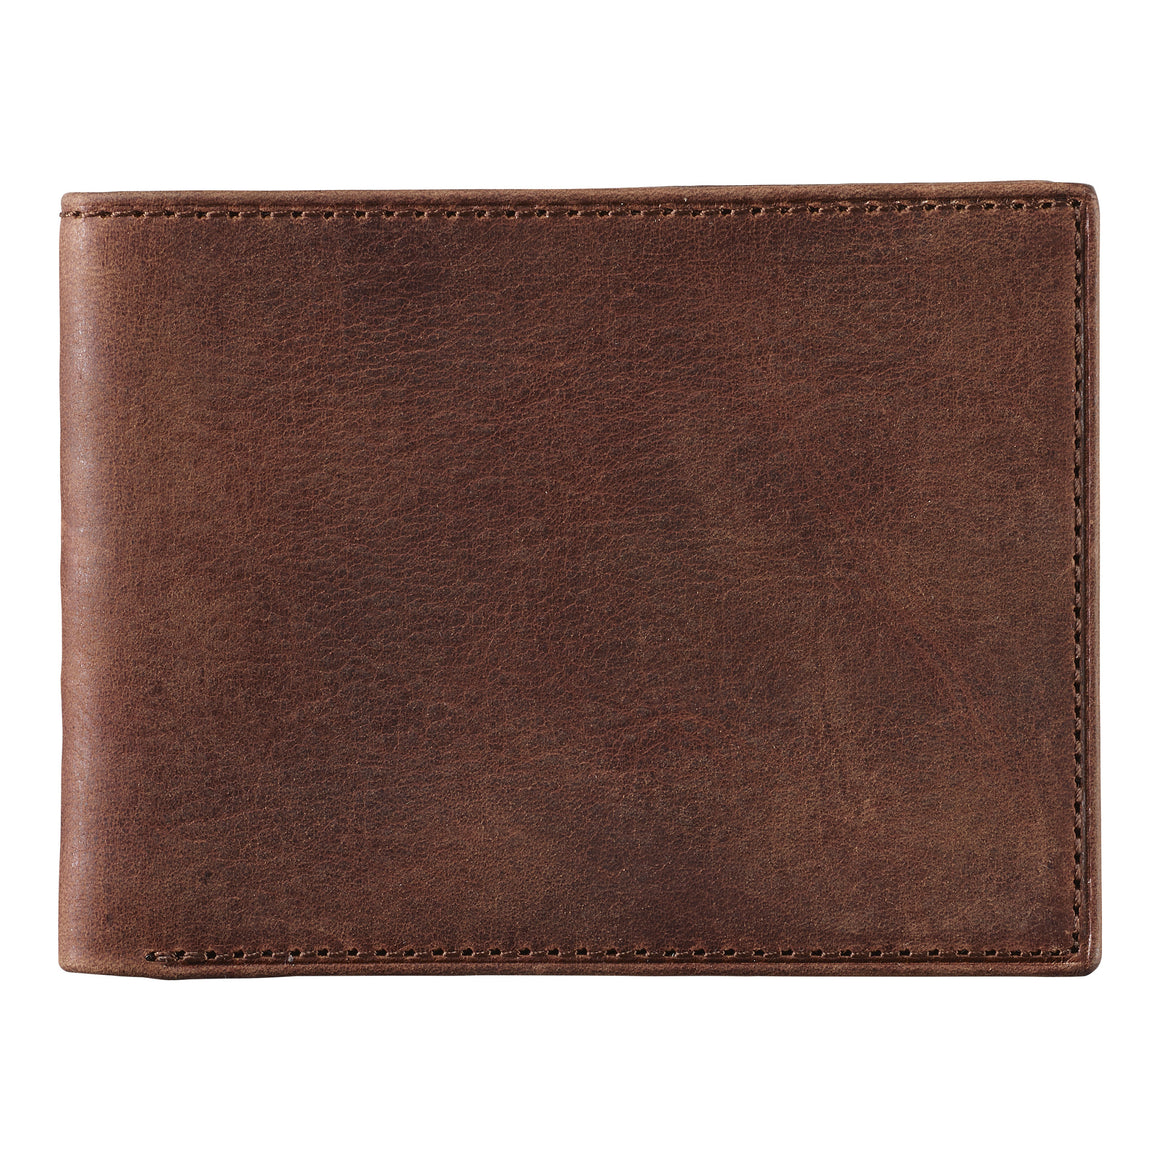 Johnston and Murphy Slimfold Wallet